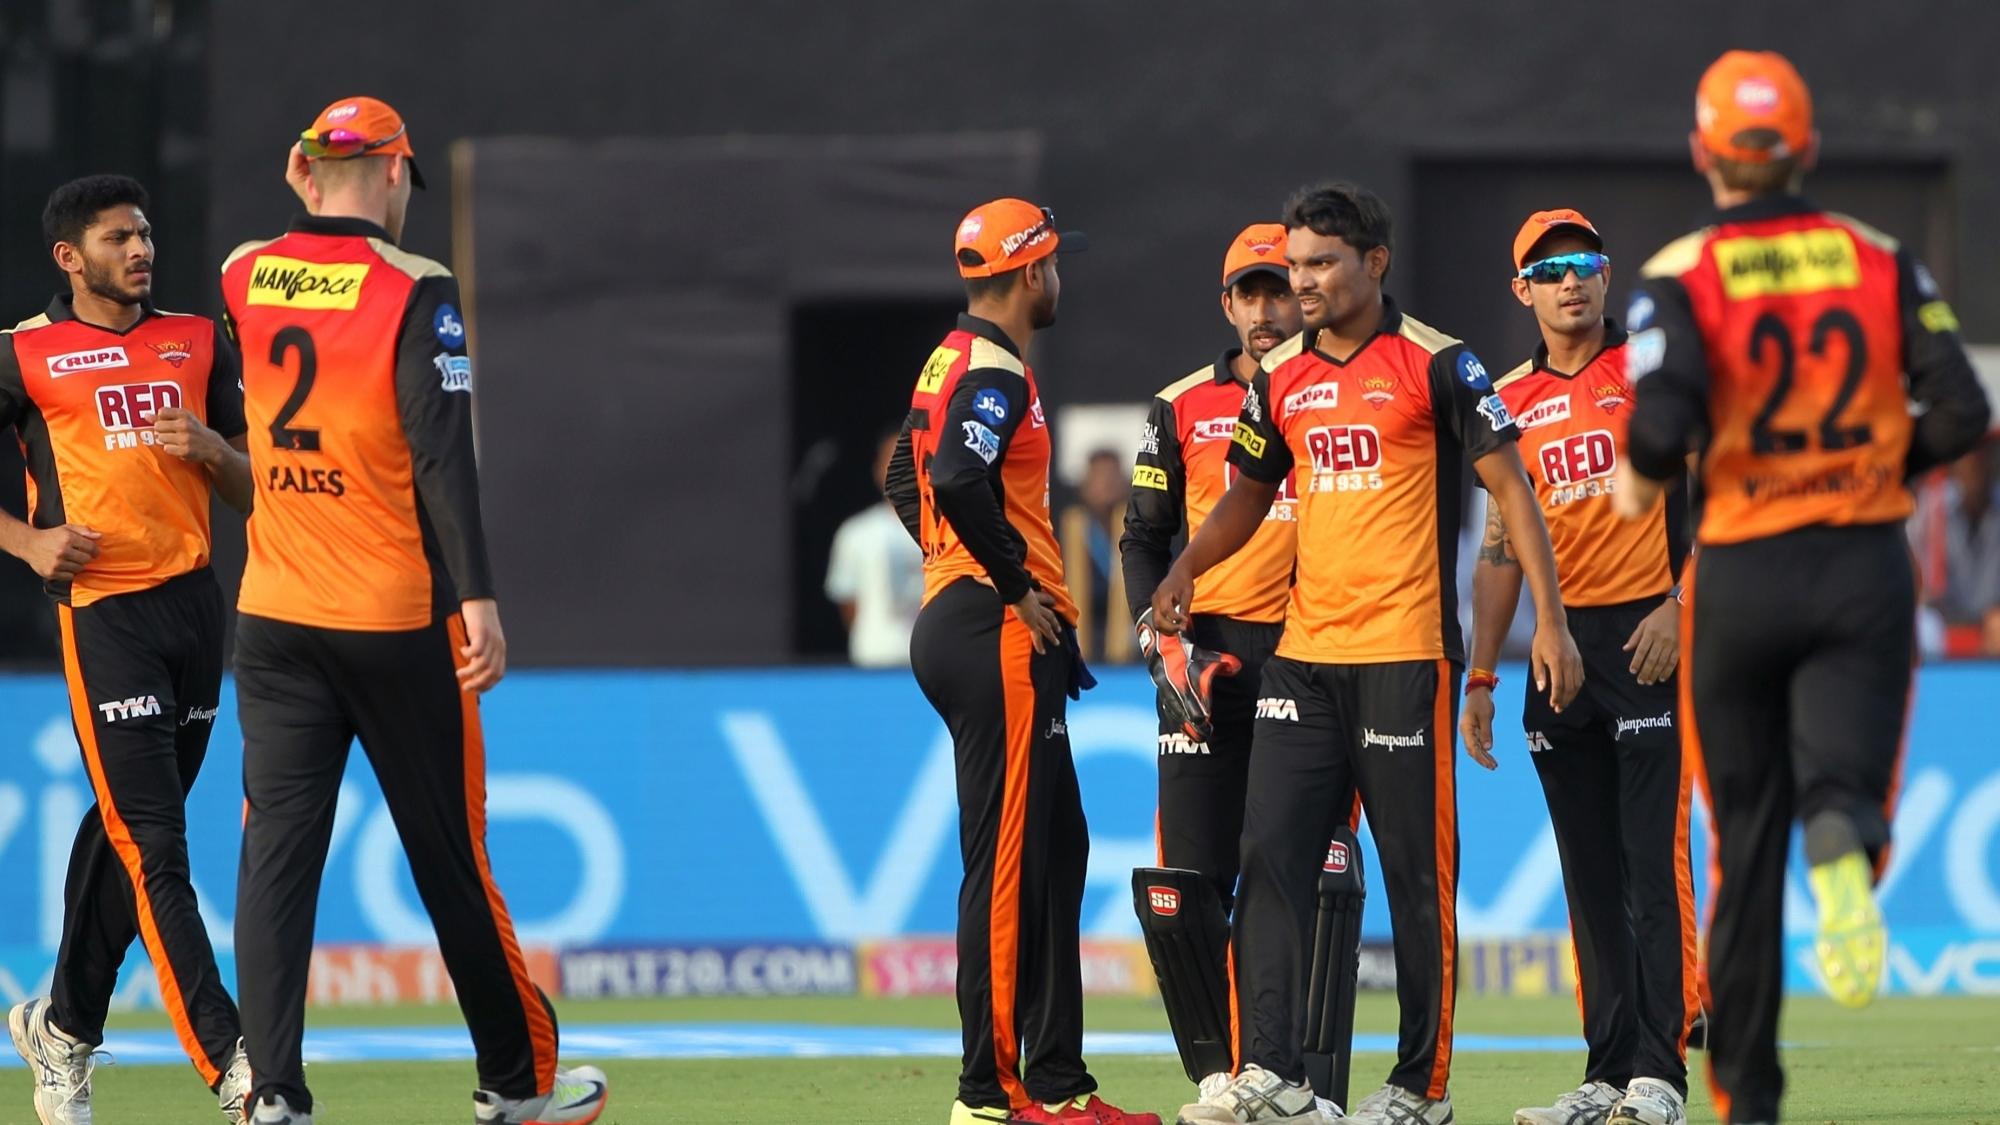 IPL 2018: Rishabh Pant was outstanding, but SRH bowlers not underperform, says Sandeep Sharma